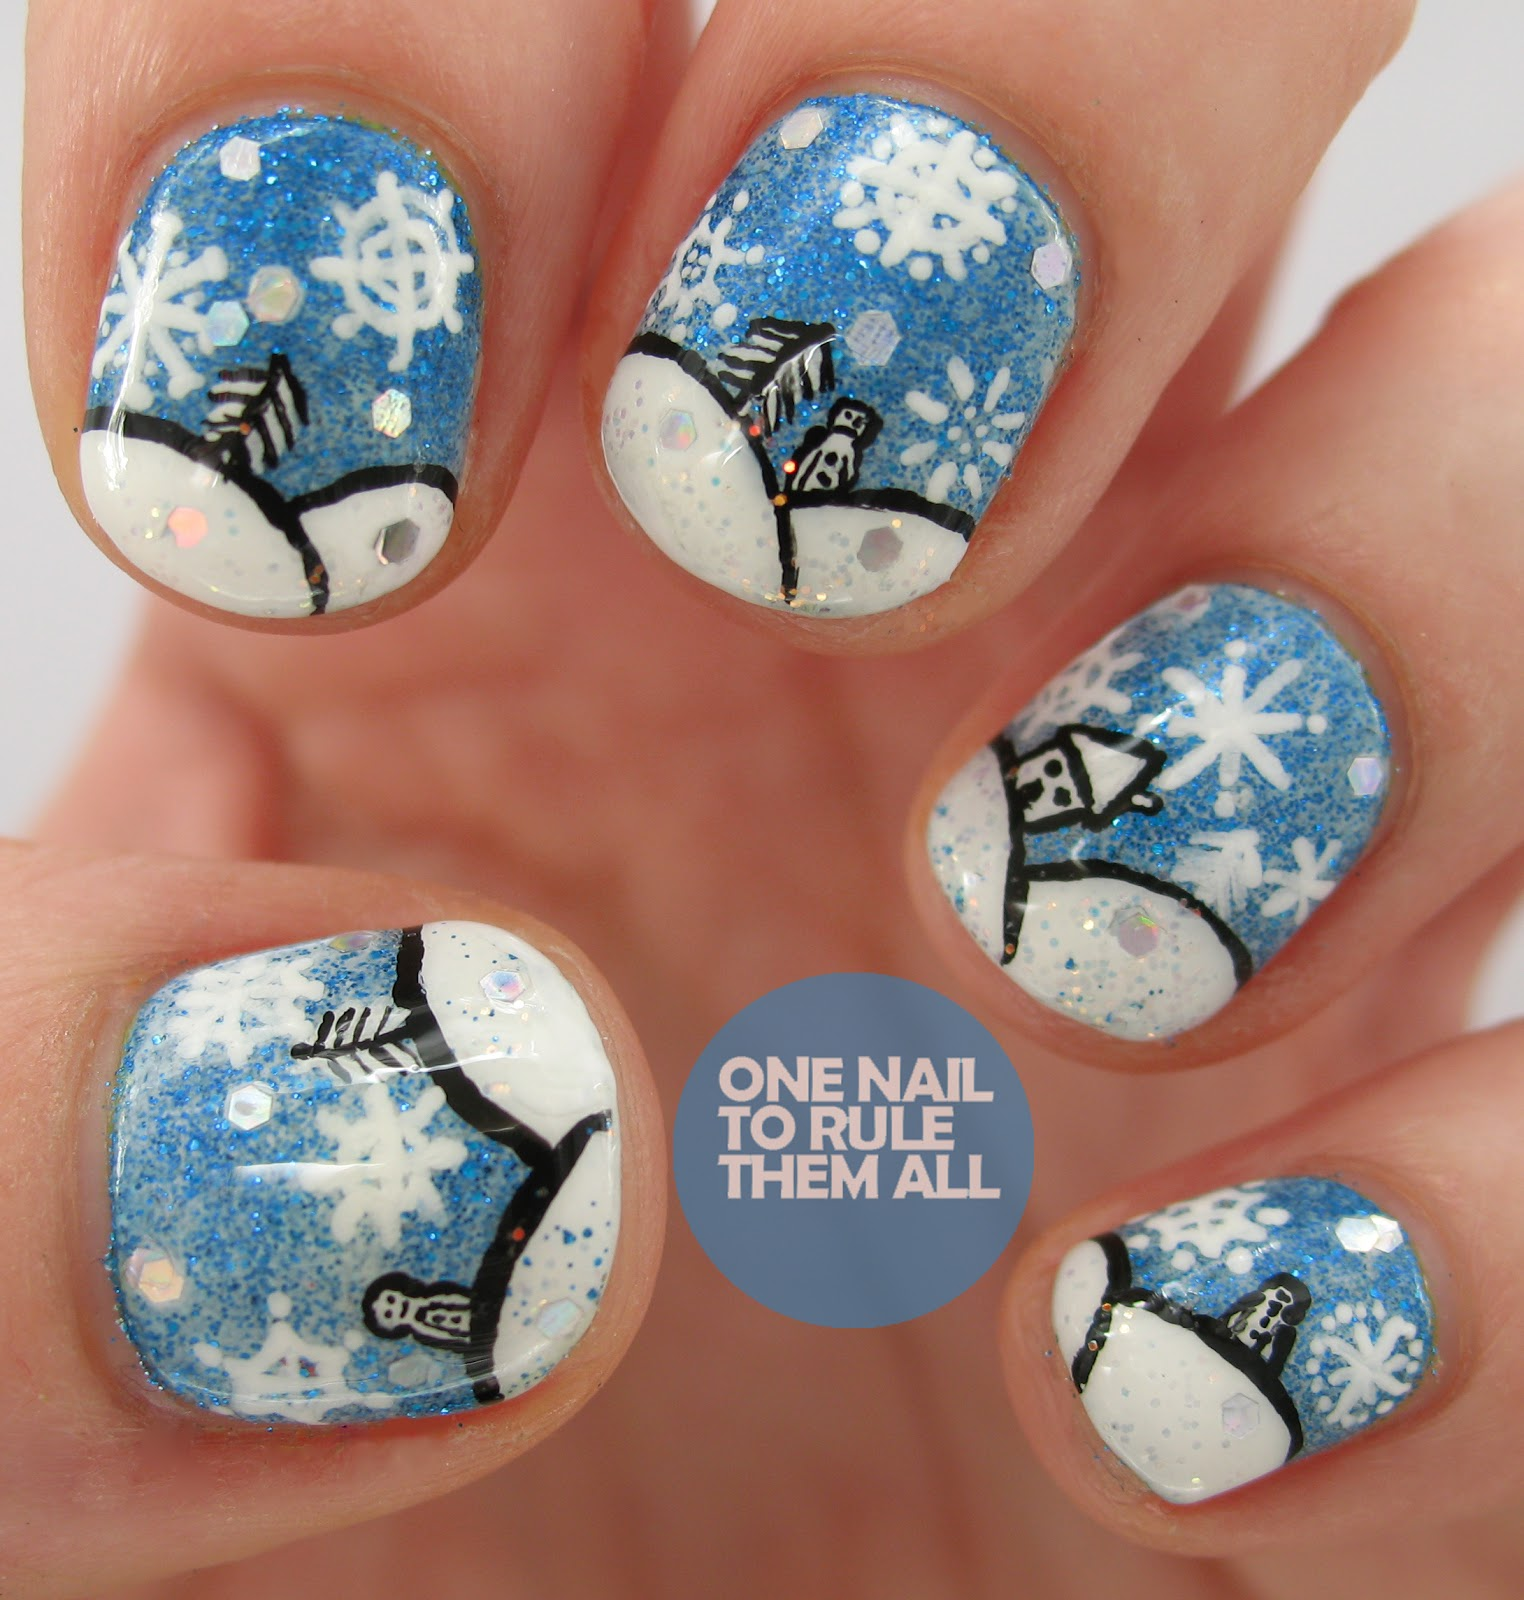 One Nail To Rule Them All: December 2012